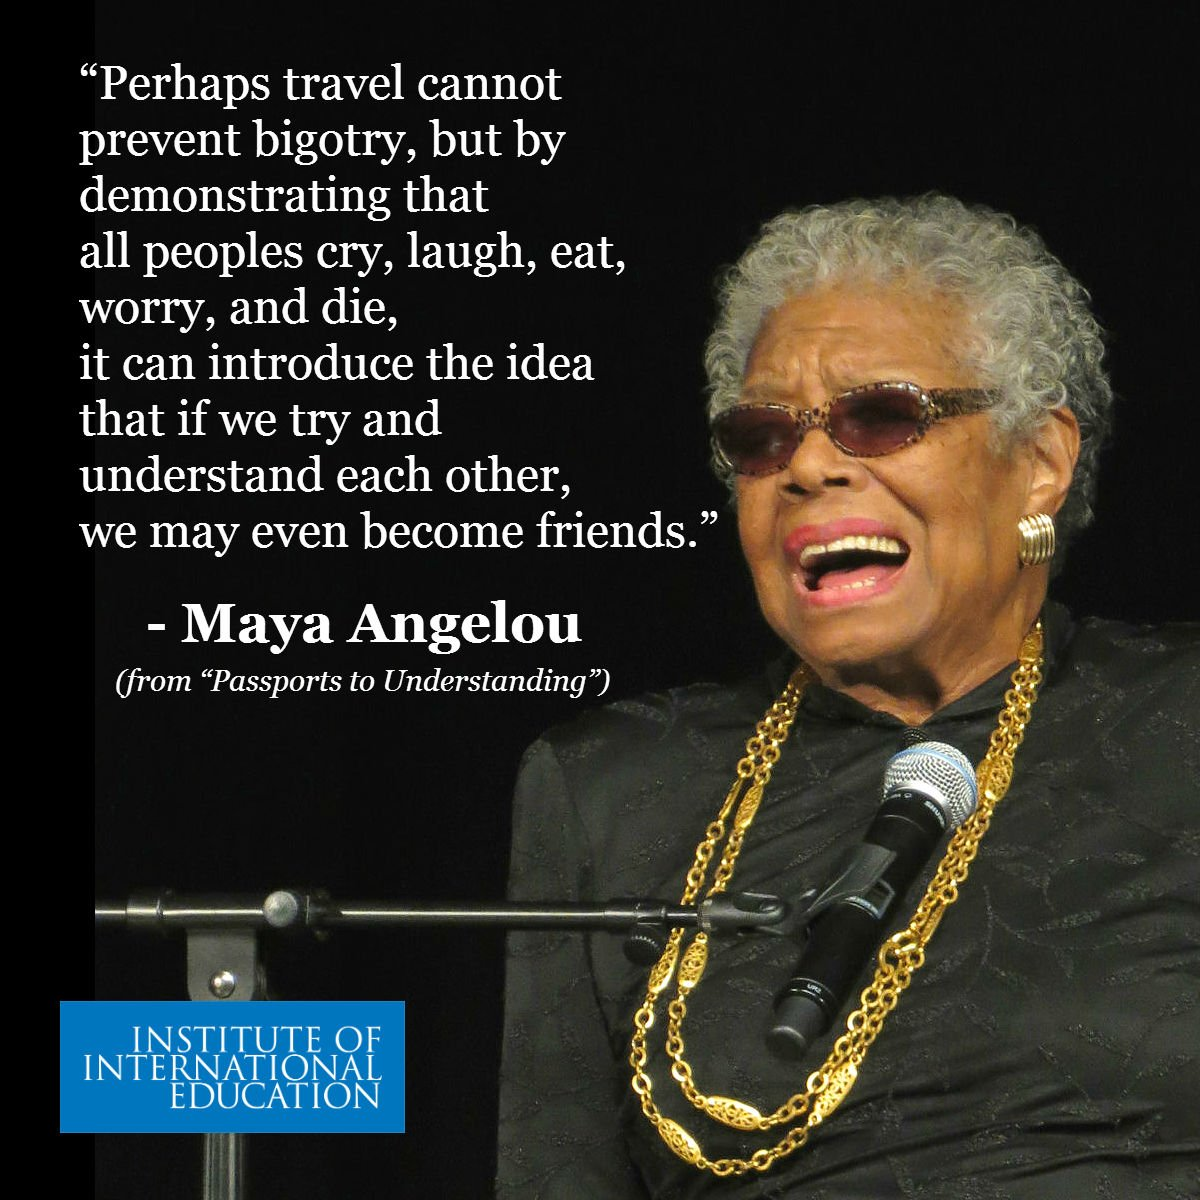 Did you know Maya Angelou was a @FulbrightPrgrm lecturer & advocate for international exchanges #BlackHistoryMonth https://t.co/IlZAGCpnjx